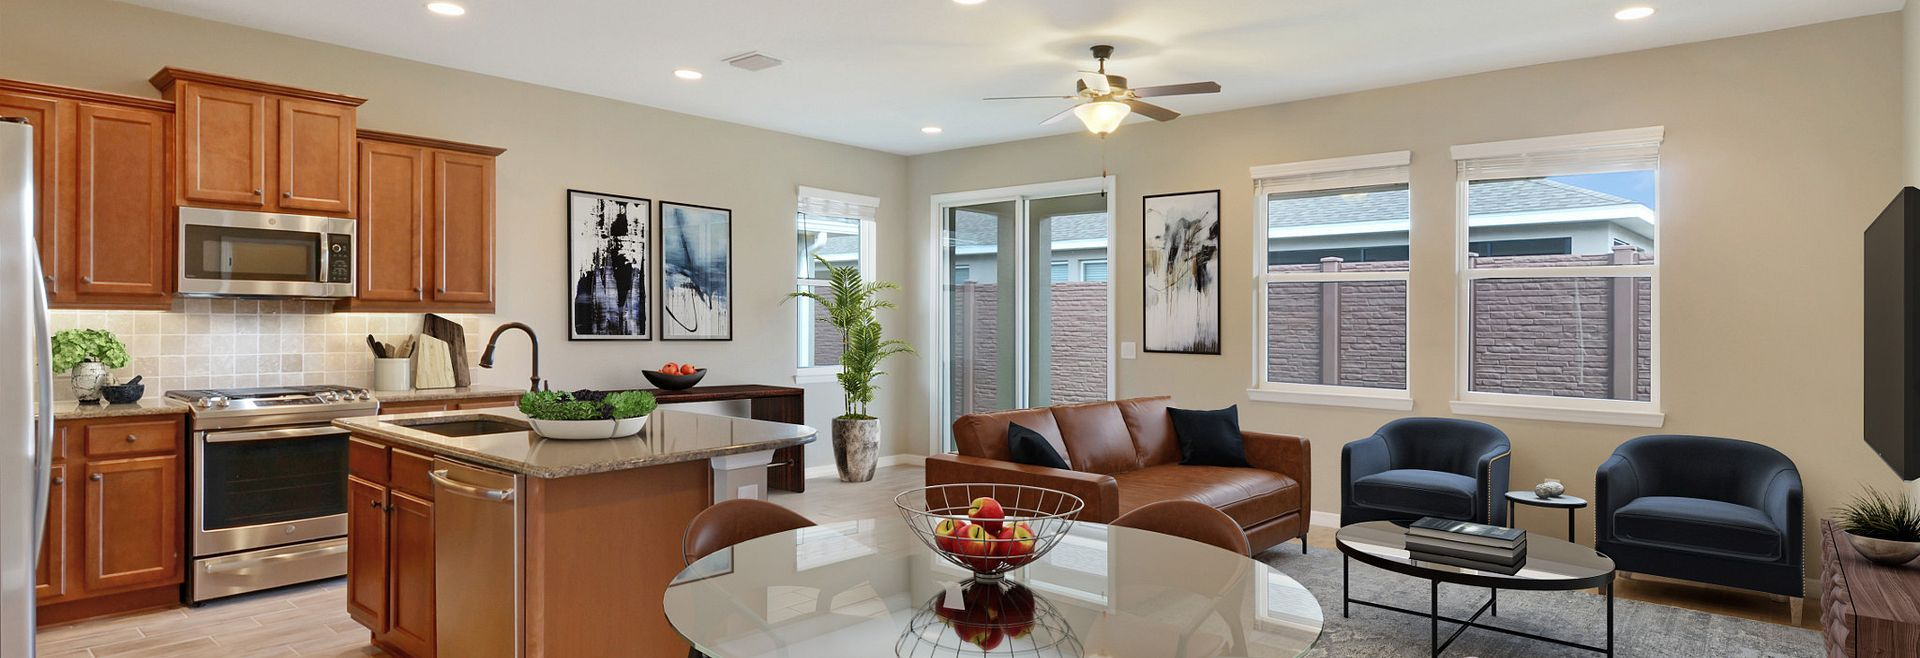 Living Area featured in the Aria By Shea Homes - Trilogy in Ocala, FL